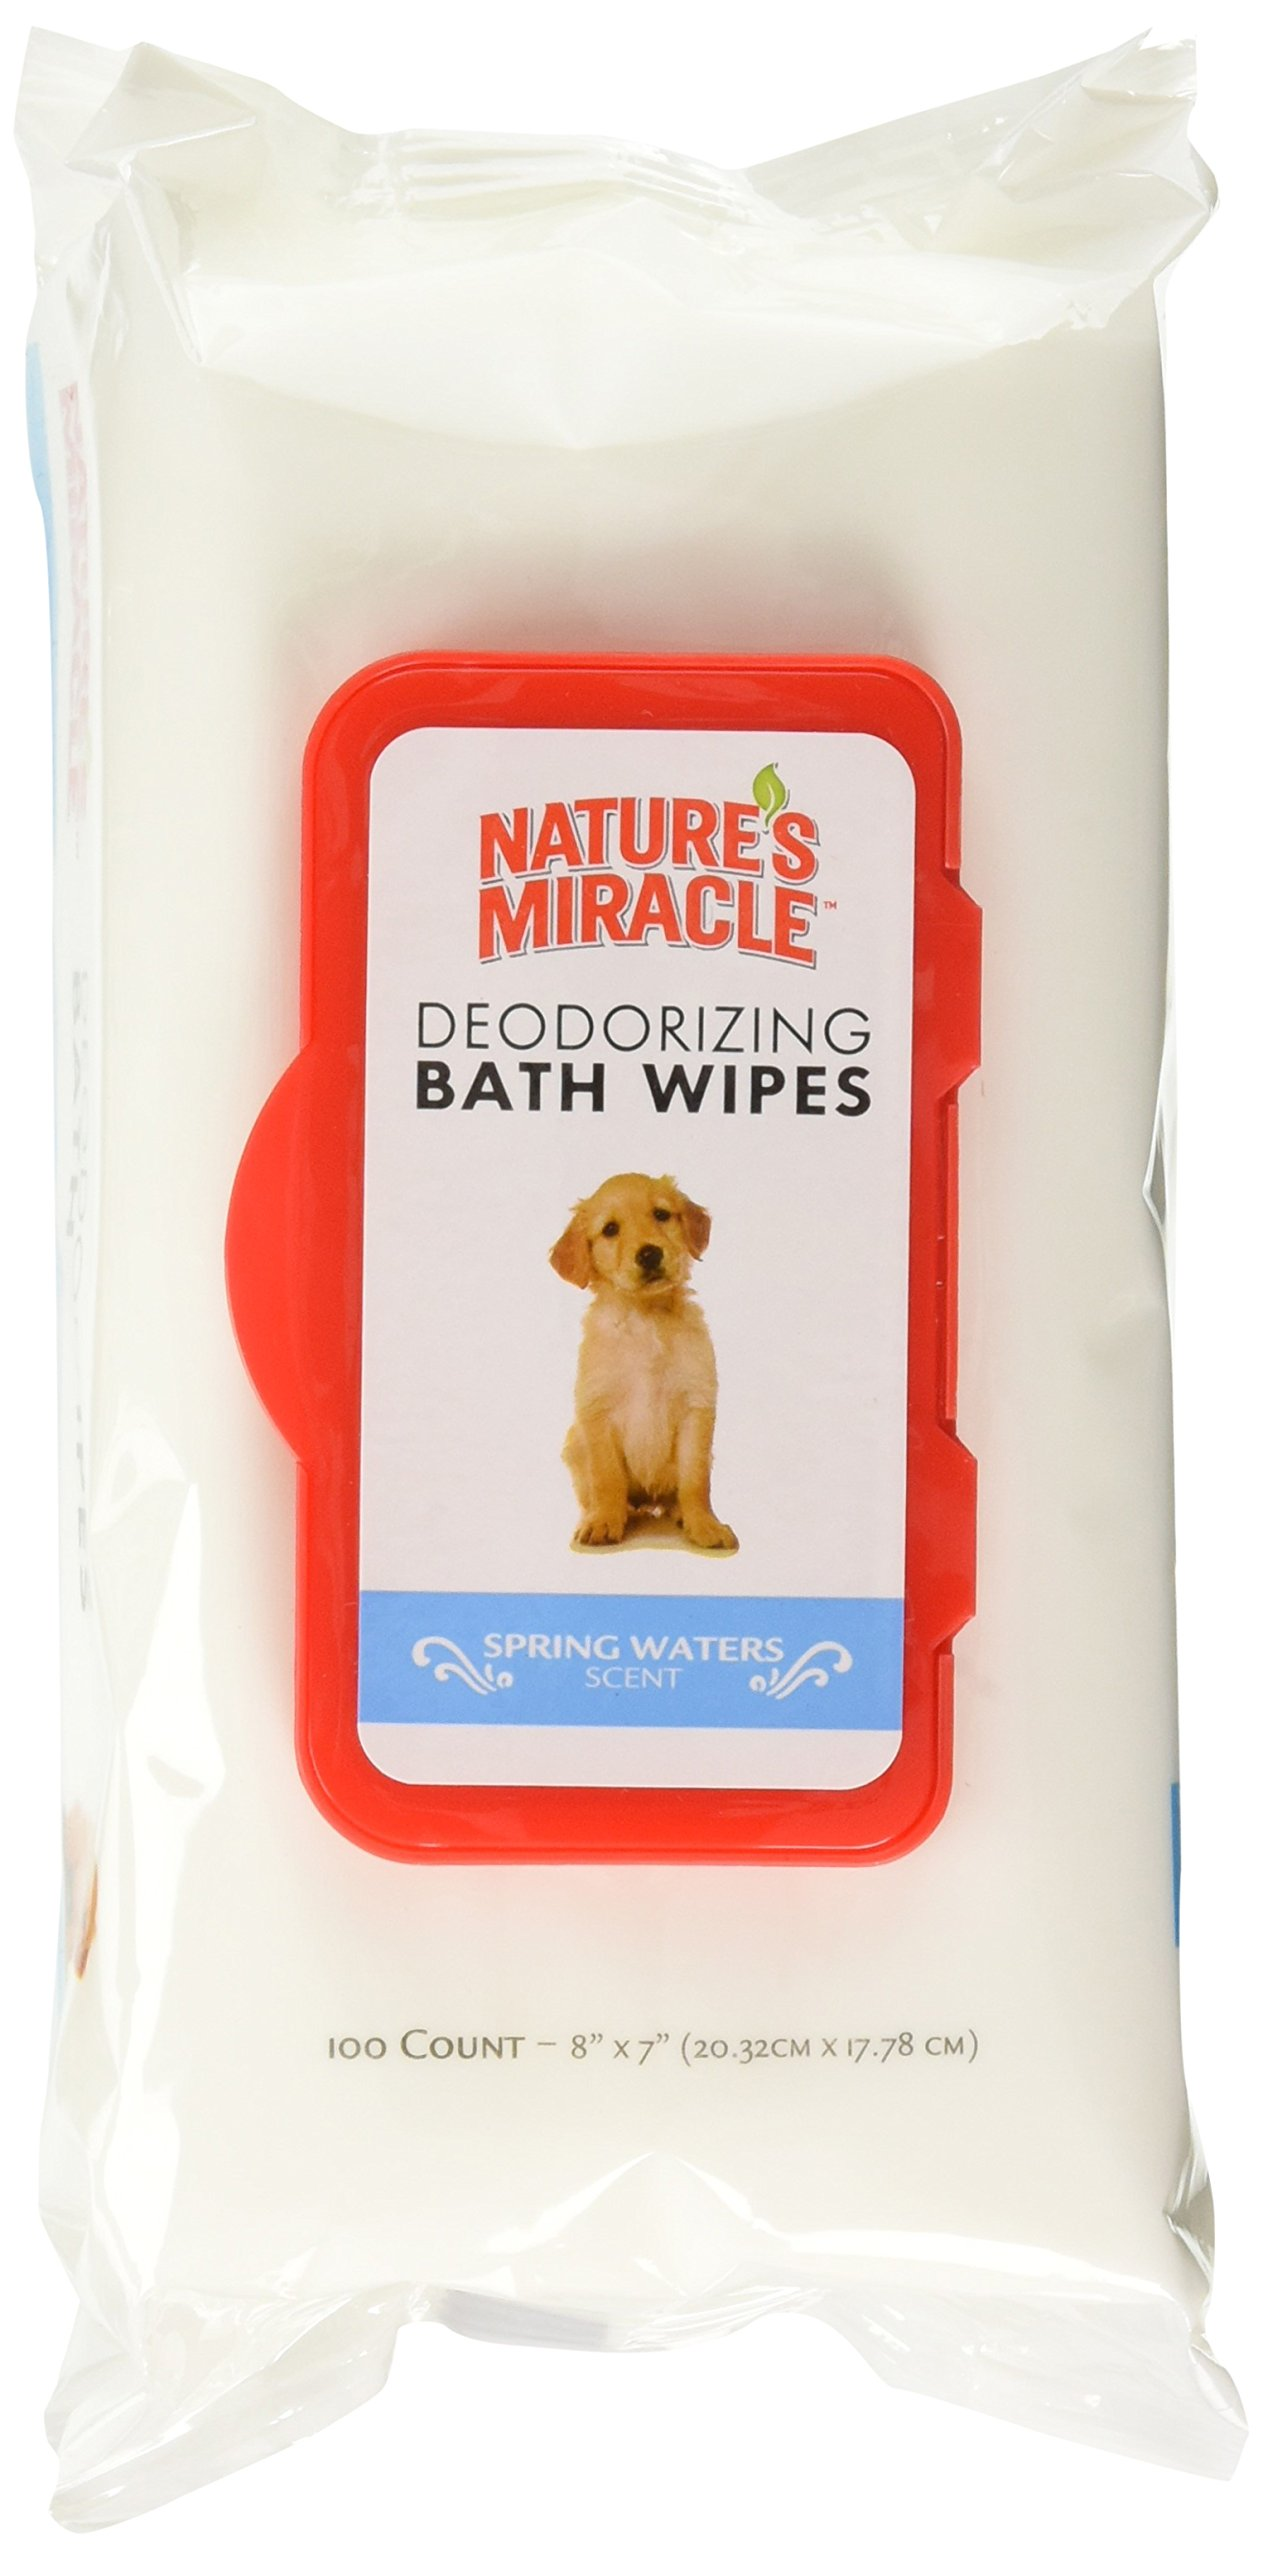 Nature's Miracle Deodorizing Bath Wipes - Spring Waters Scent - (2 Packs of 100 Count)